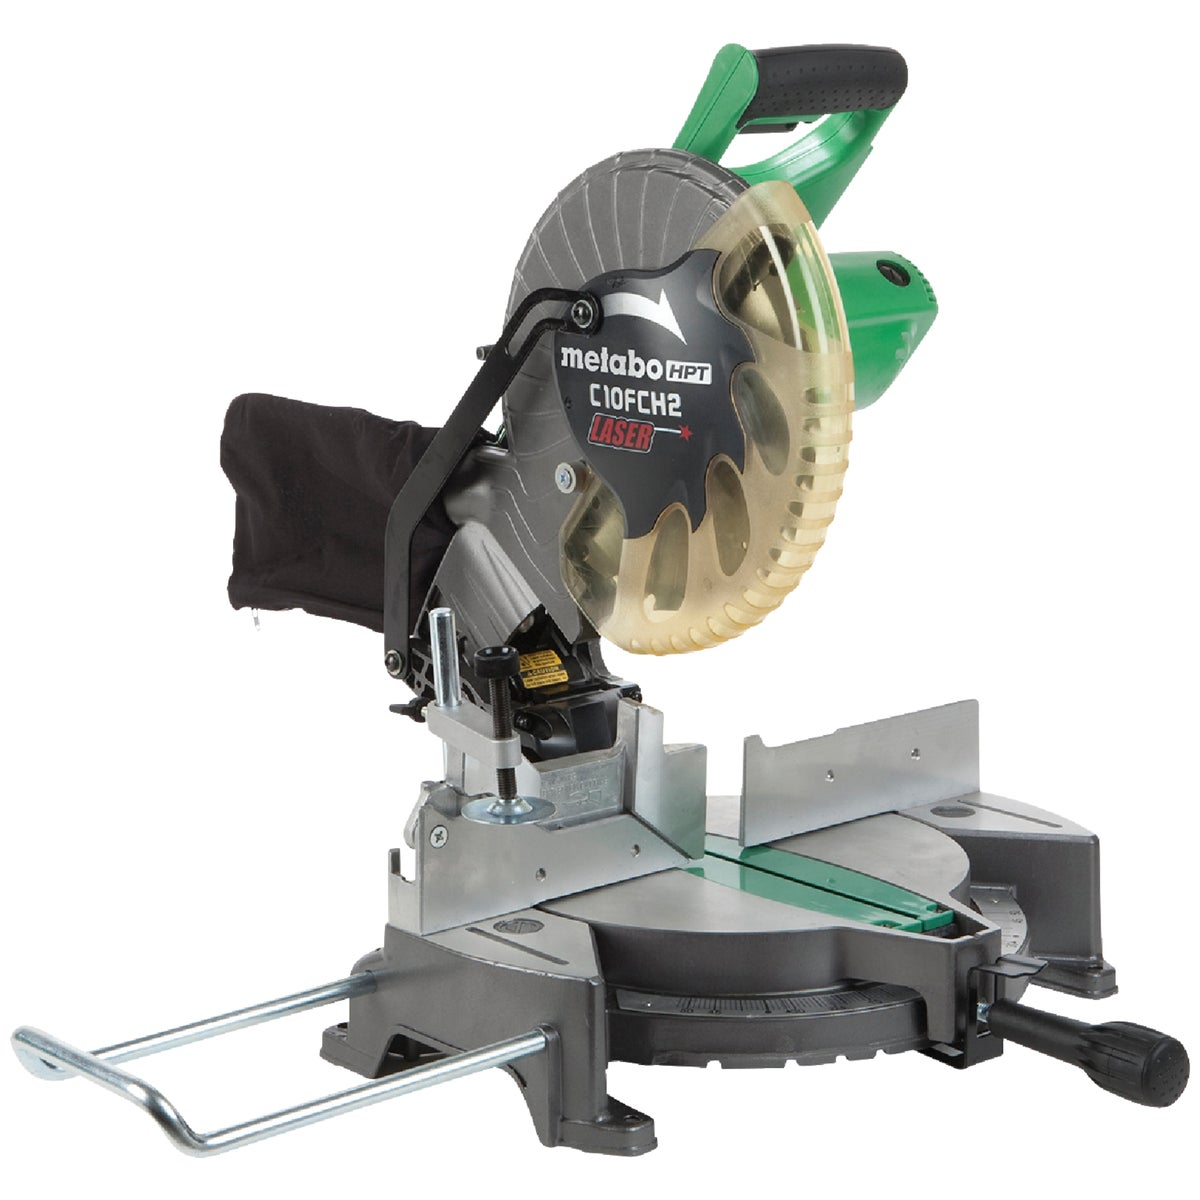 "10"" MITER SAW W/LASER - C10FCH2 by Hitachi Power Tools"